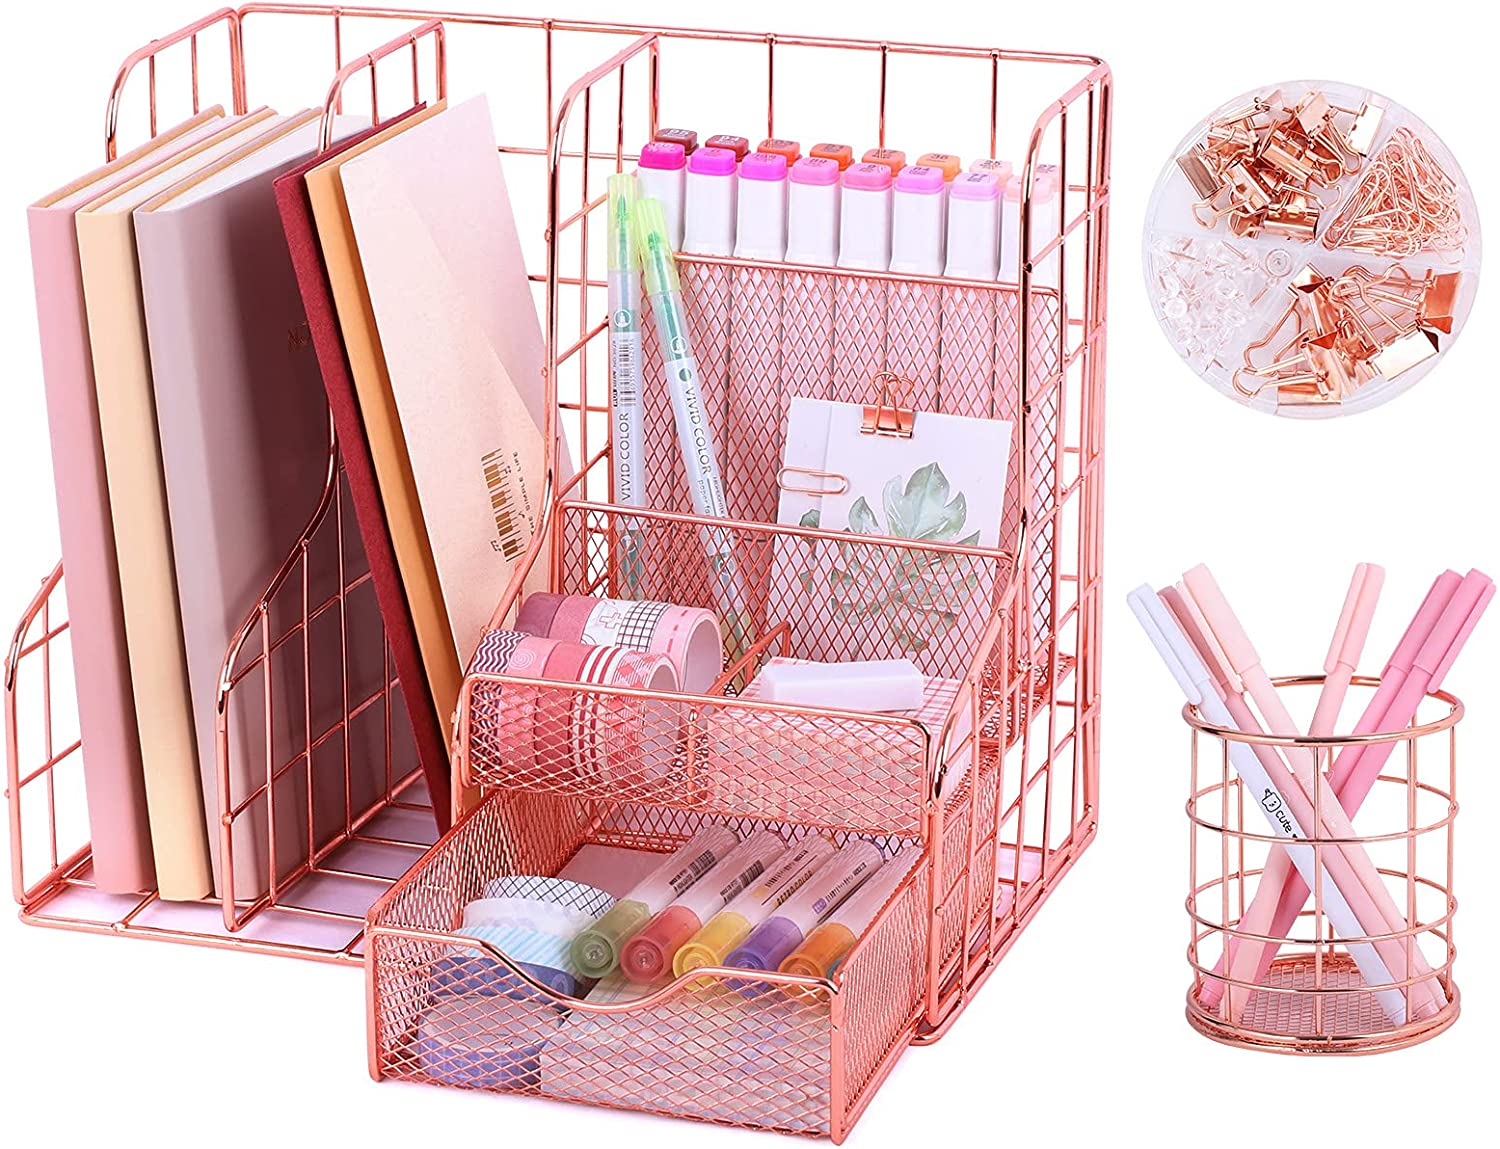 Rose Gold Desk Organizer with 6 Compartments, Mesh Metal Home Office Supplies Cute Pen Holder with Accessories, Magazine Notepads Storage Stationary Set for Women Girls